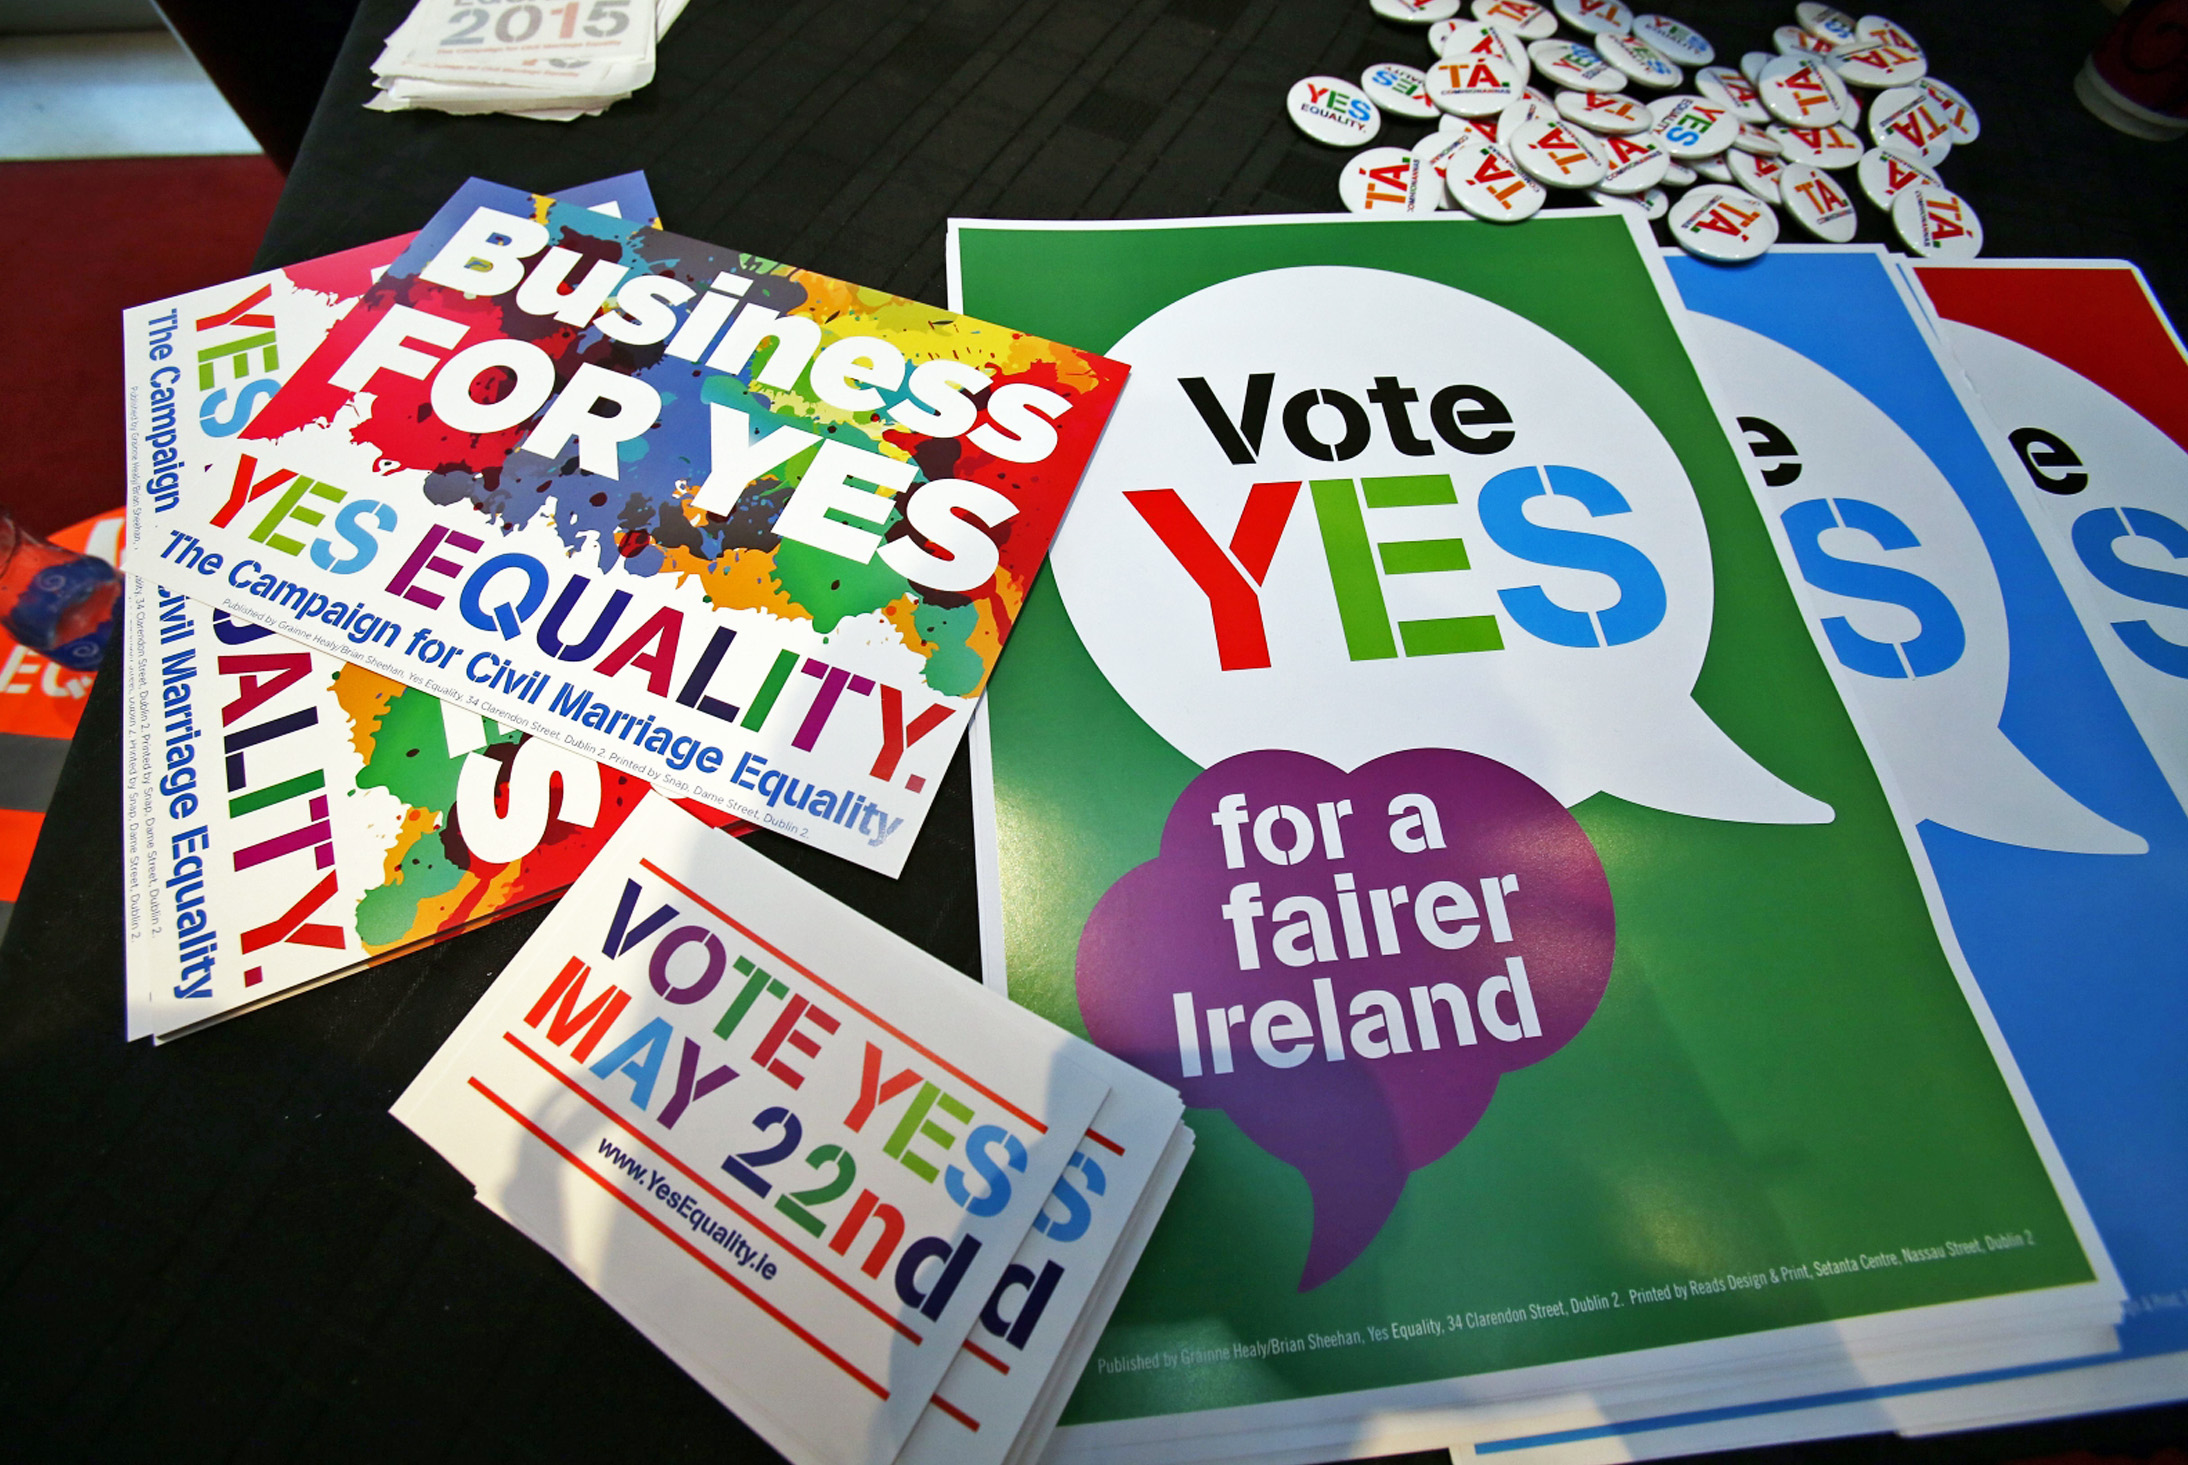 Ireland Marriage Referendum 2015